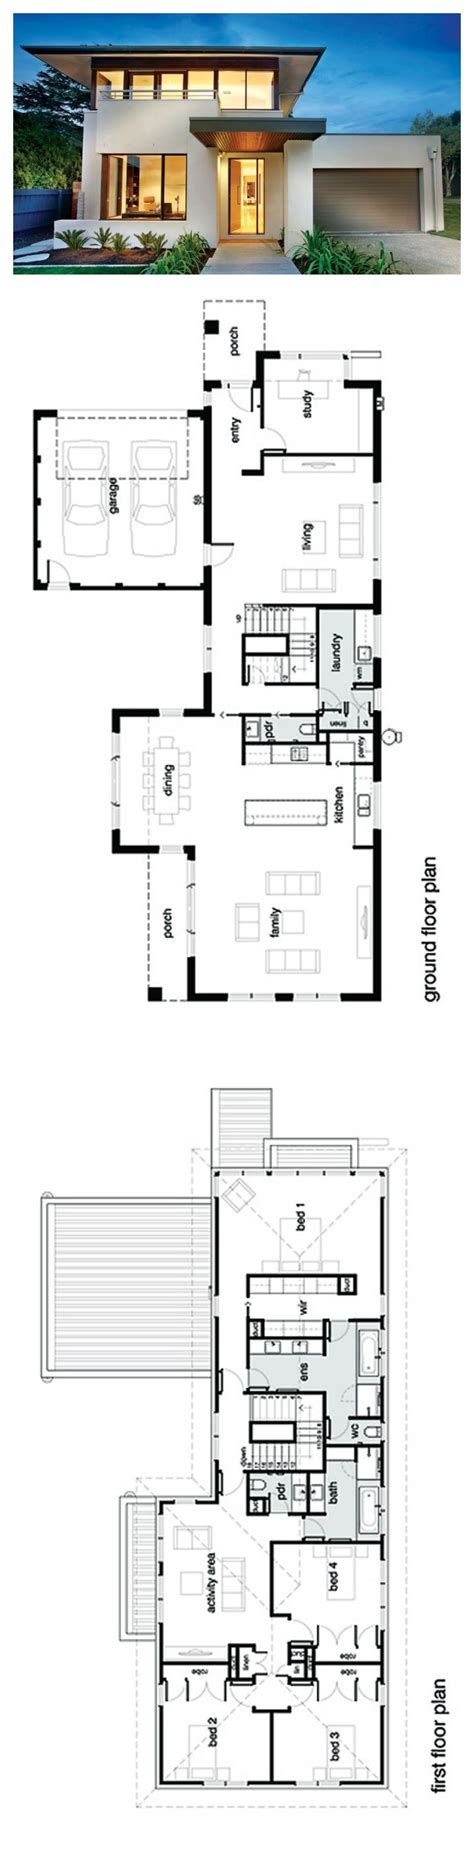 modern house floor plans the 25 best ideas about modern house plans on